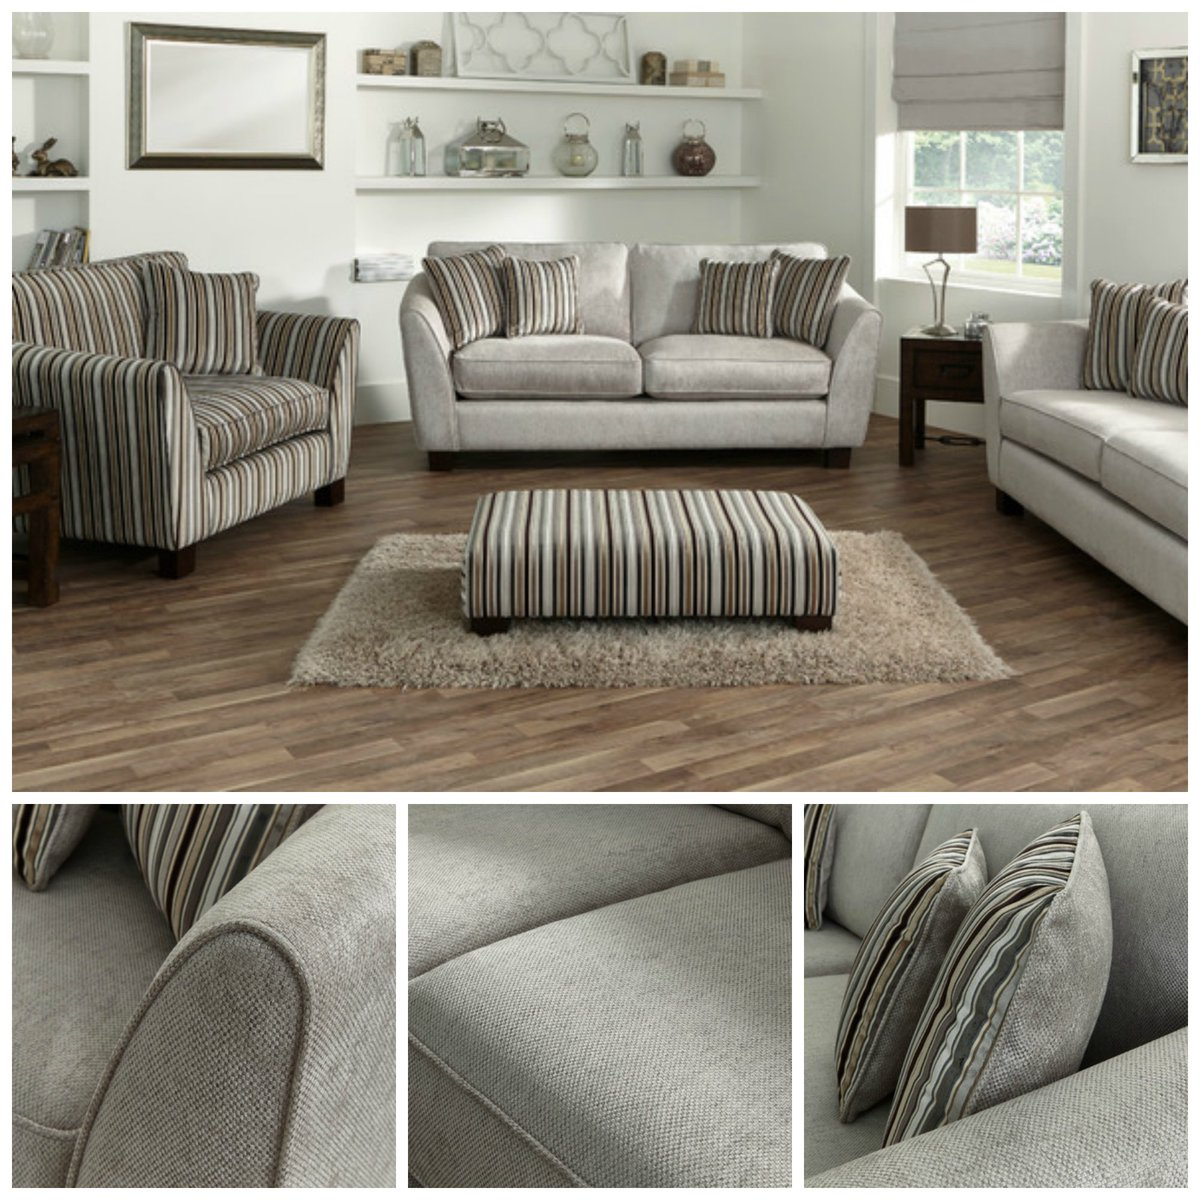 Scs Sofas On Twitter This Gabby 3 Seater Sofa Is Now Better Than Half Price Only 599 Save Over 700 Https T Co Gboboosa7h